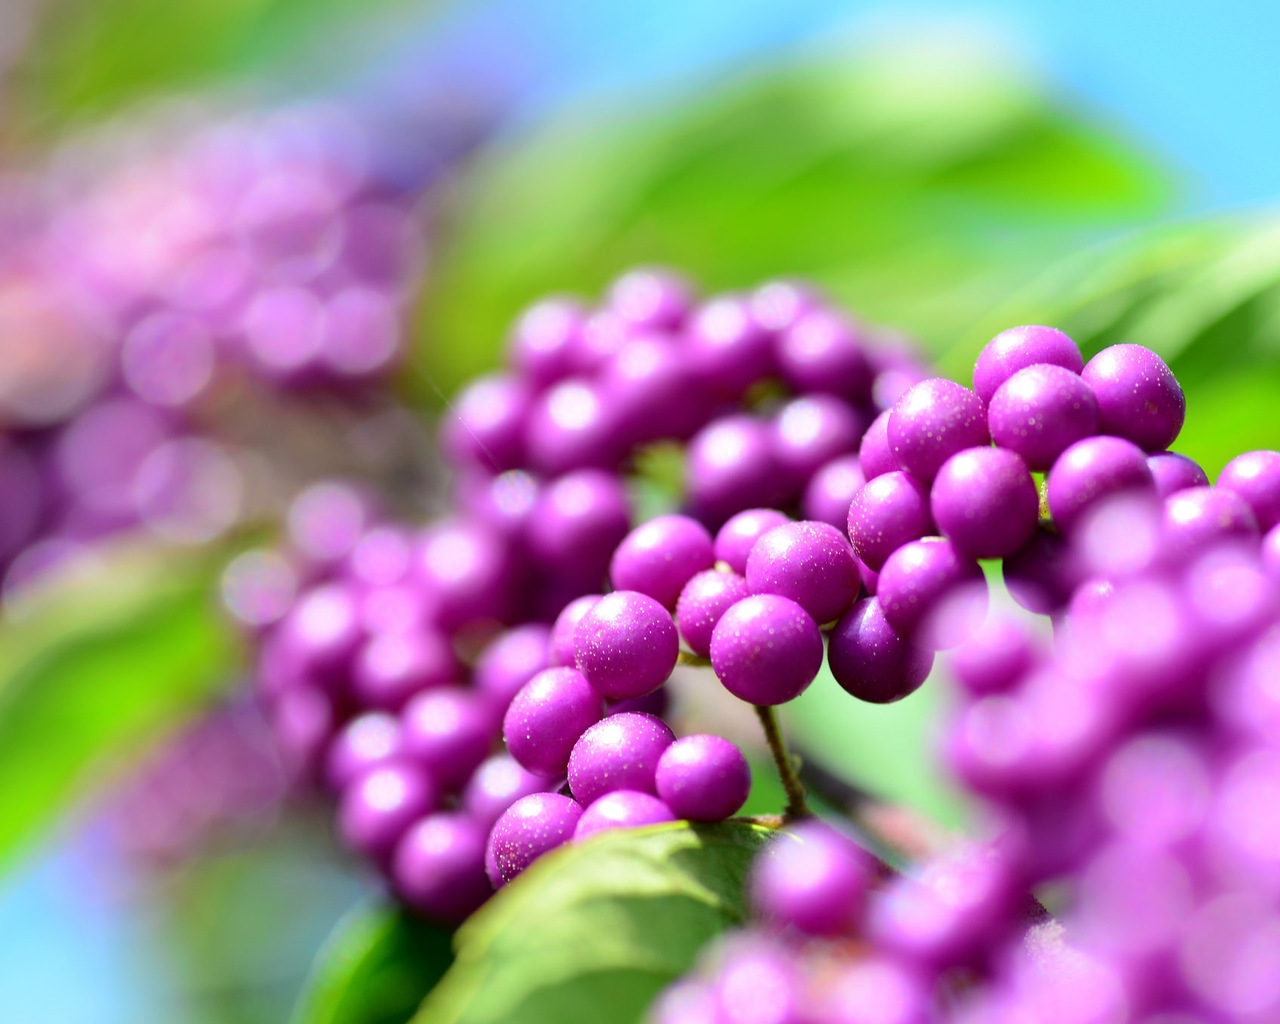 Callicarpa Berries for 1280 x 1024 resolution